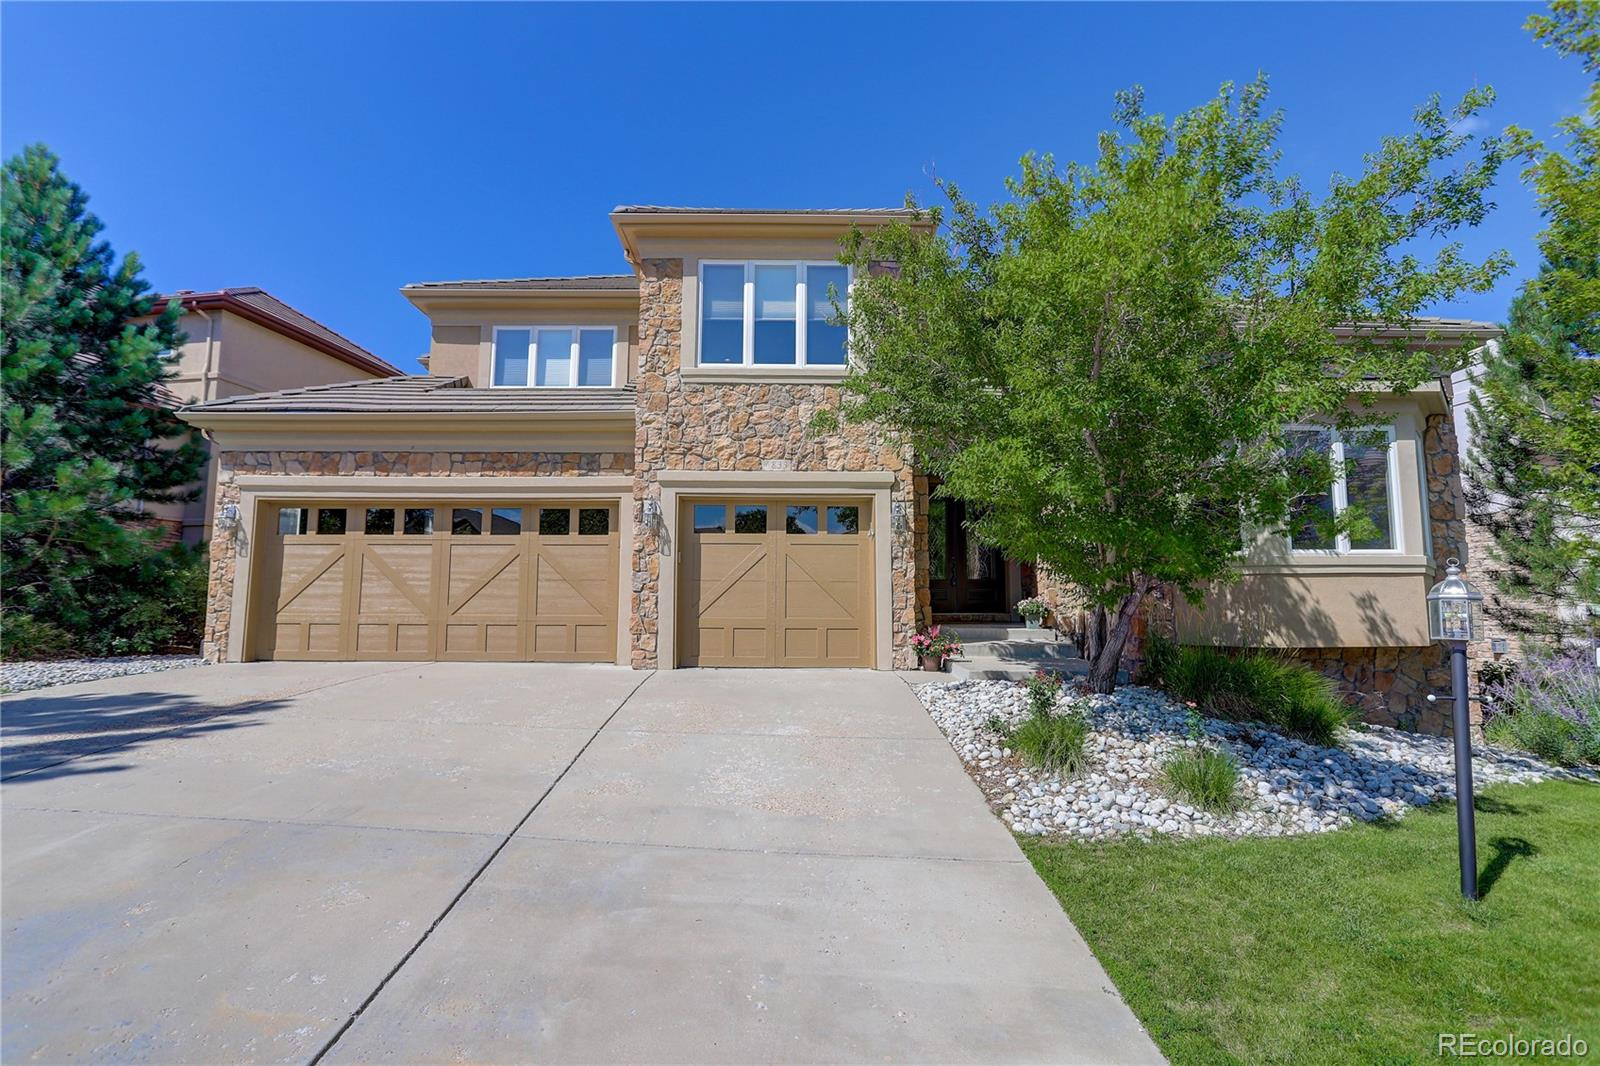 6833 S Netherland Way, Aurora, CO 80016 - Aurora, CO real estate listing